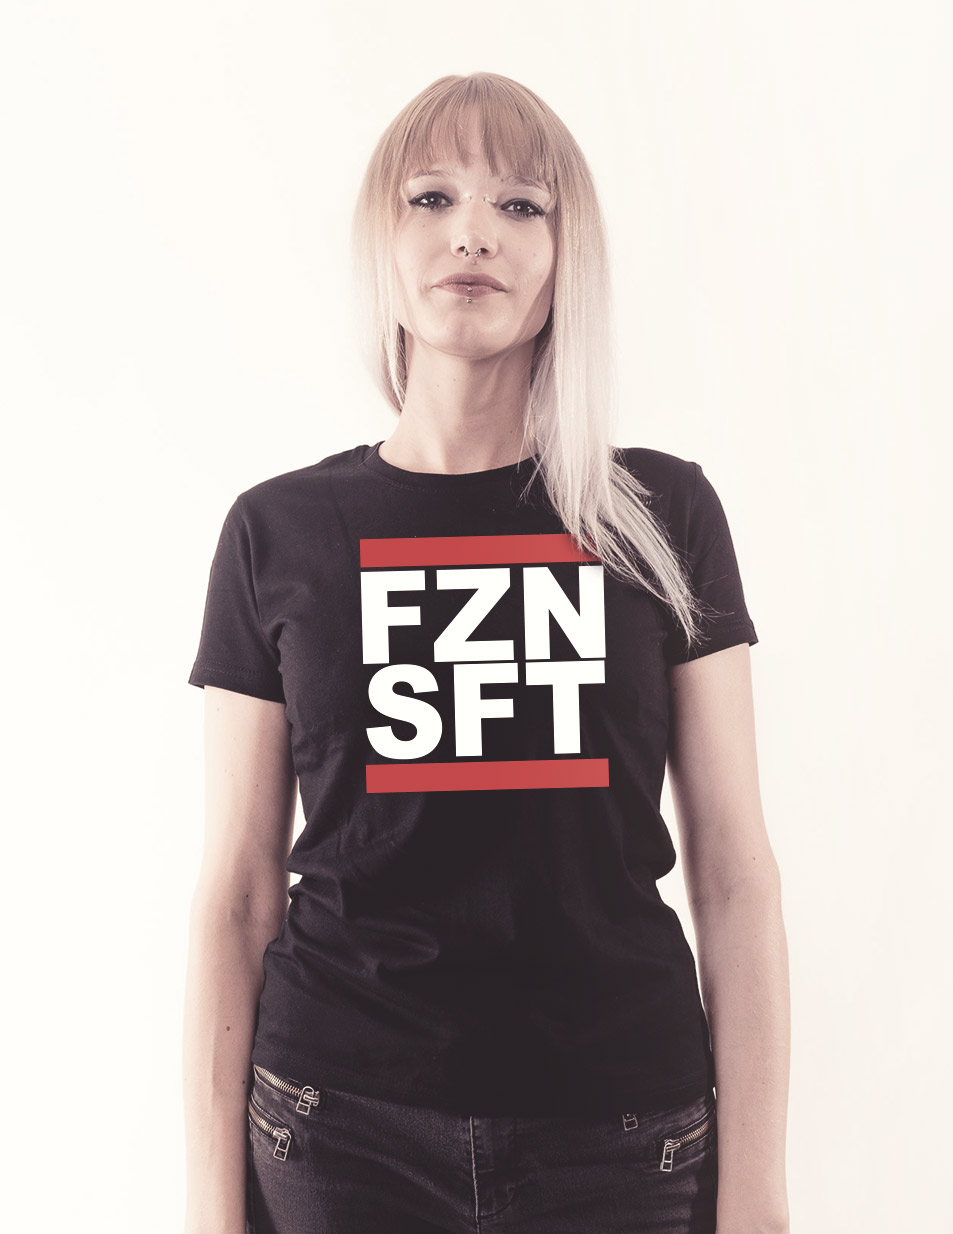 FZNSFT Girly Shirt